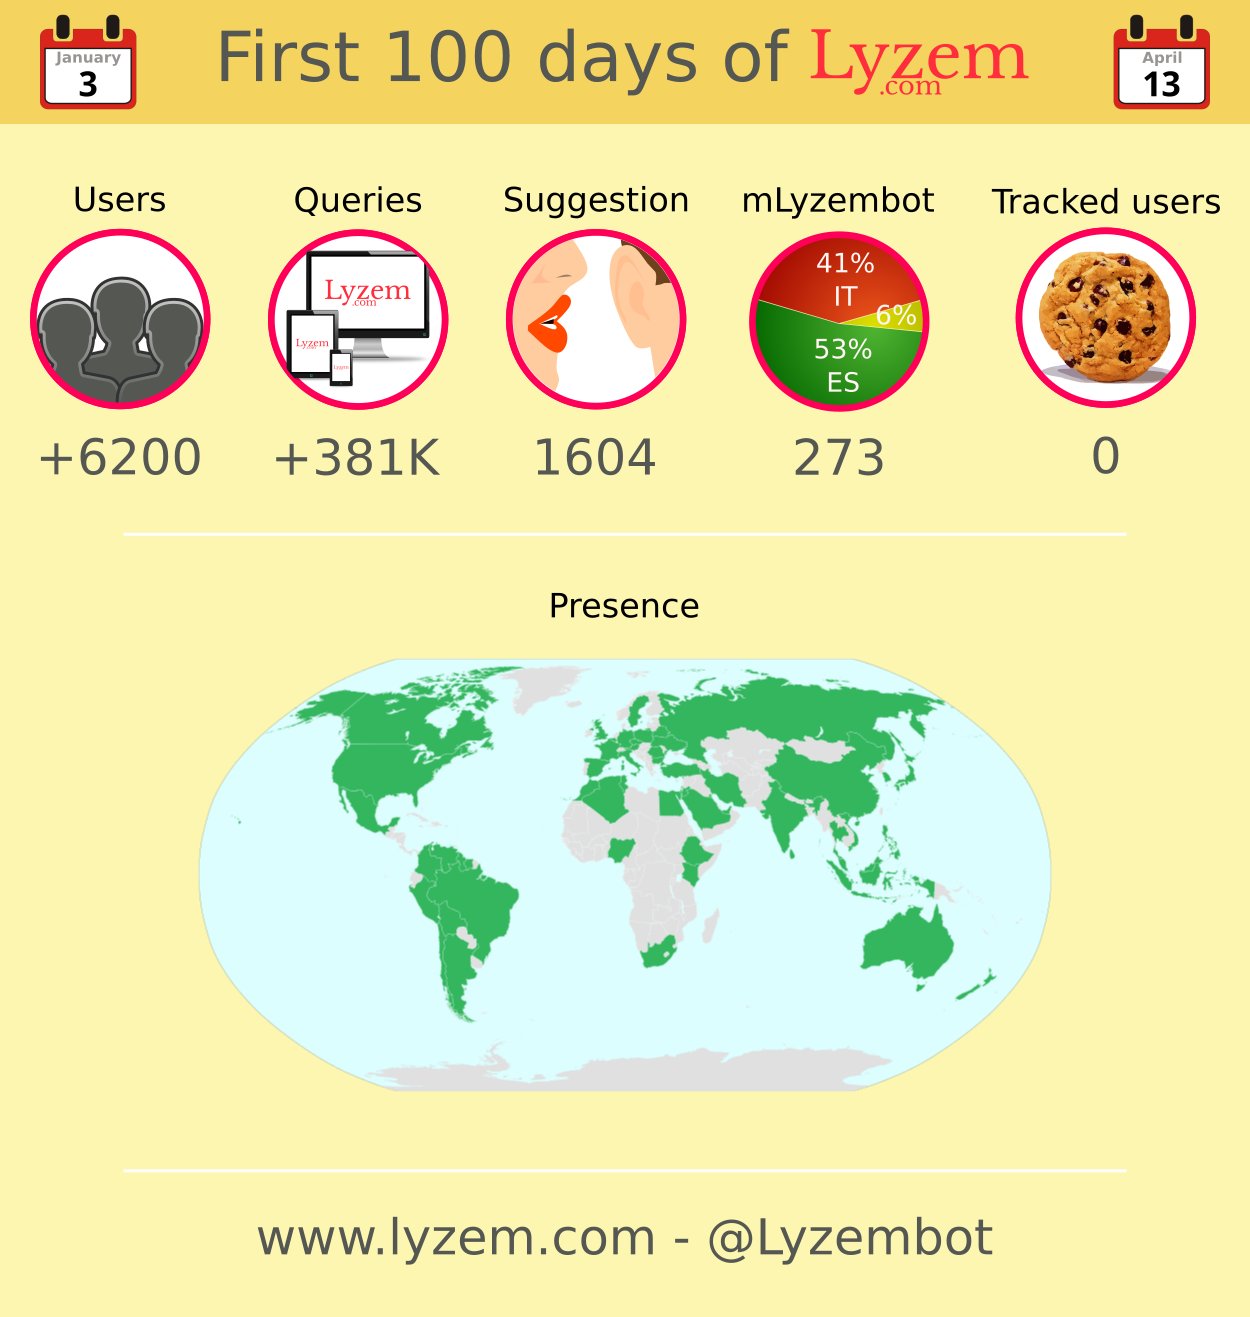 First 100 days of Lyzem